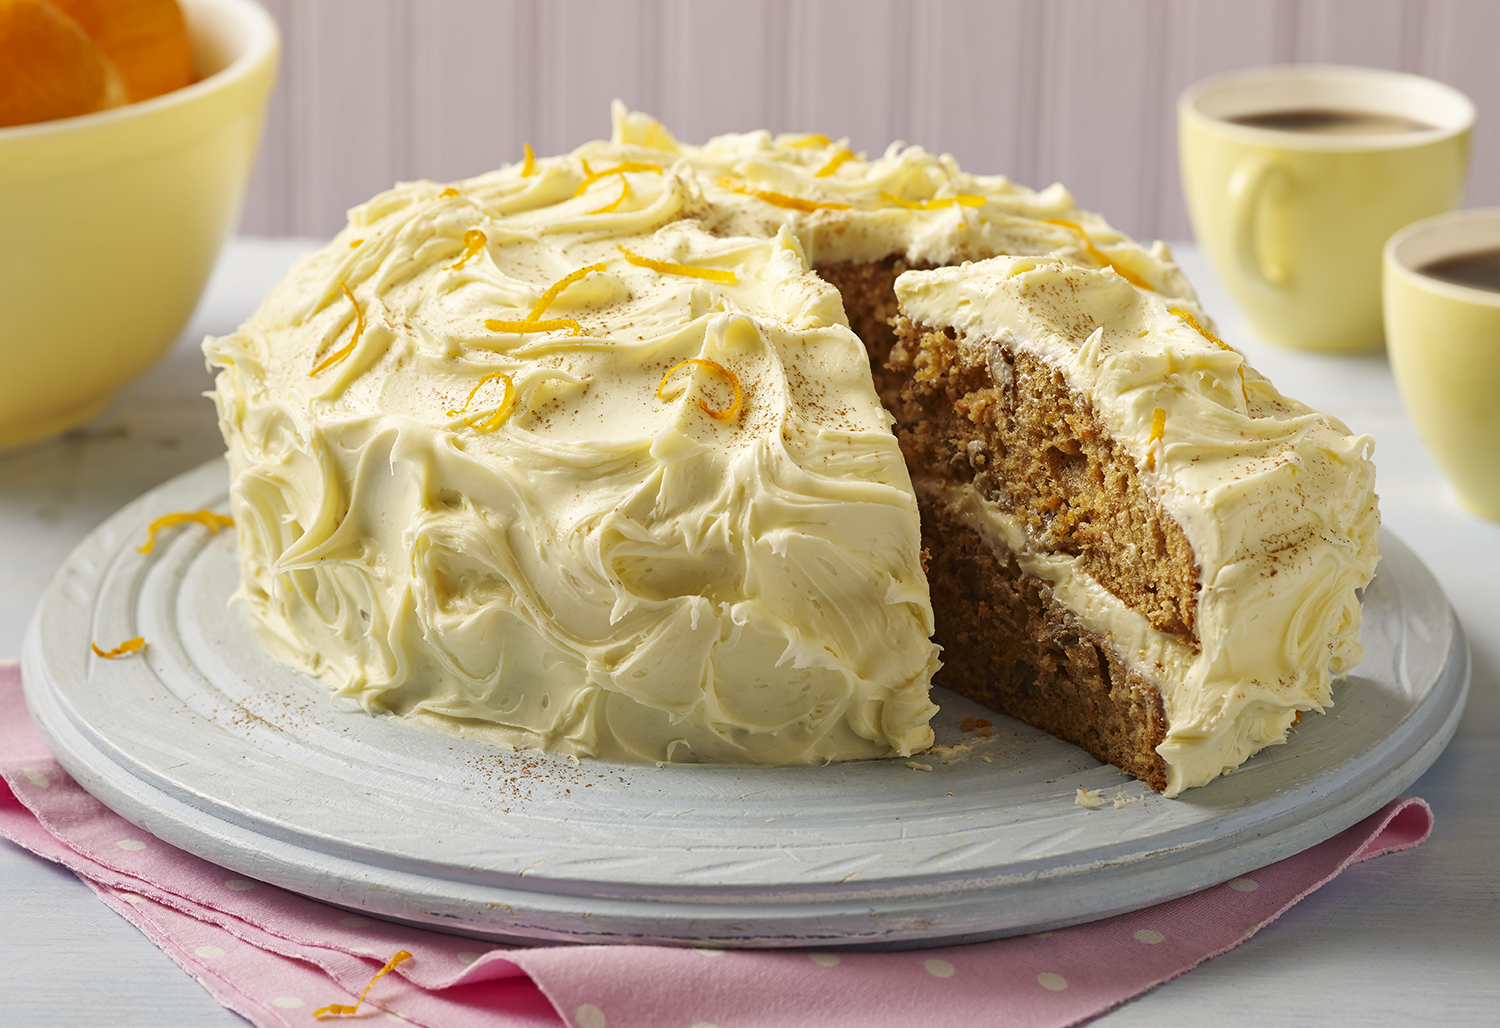 Betty Crocker Carrot Cake Sliced